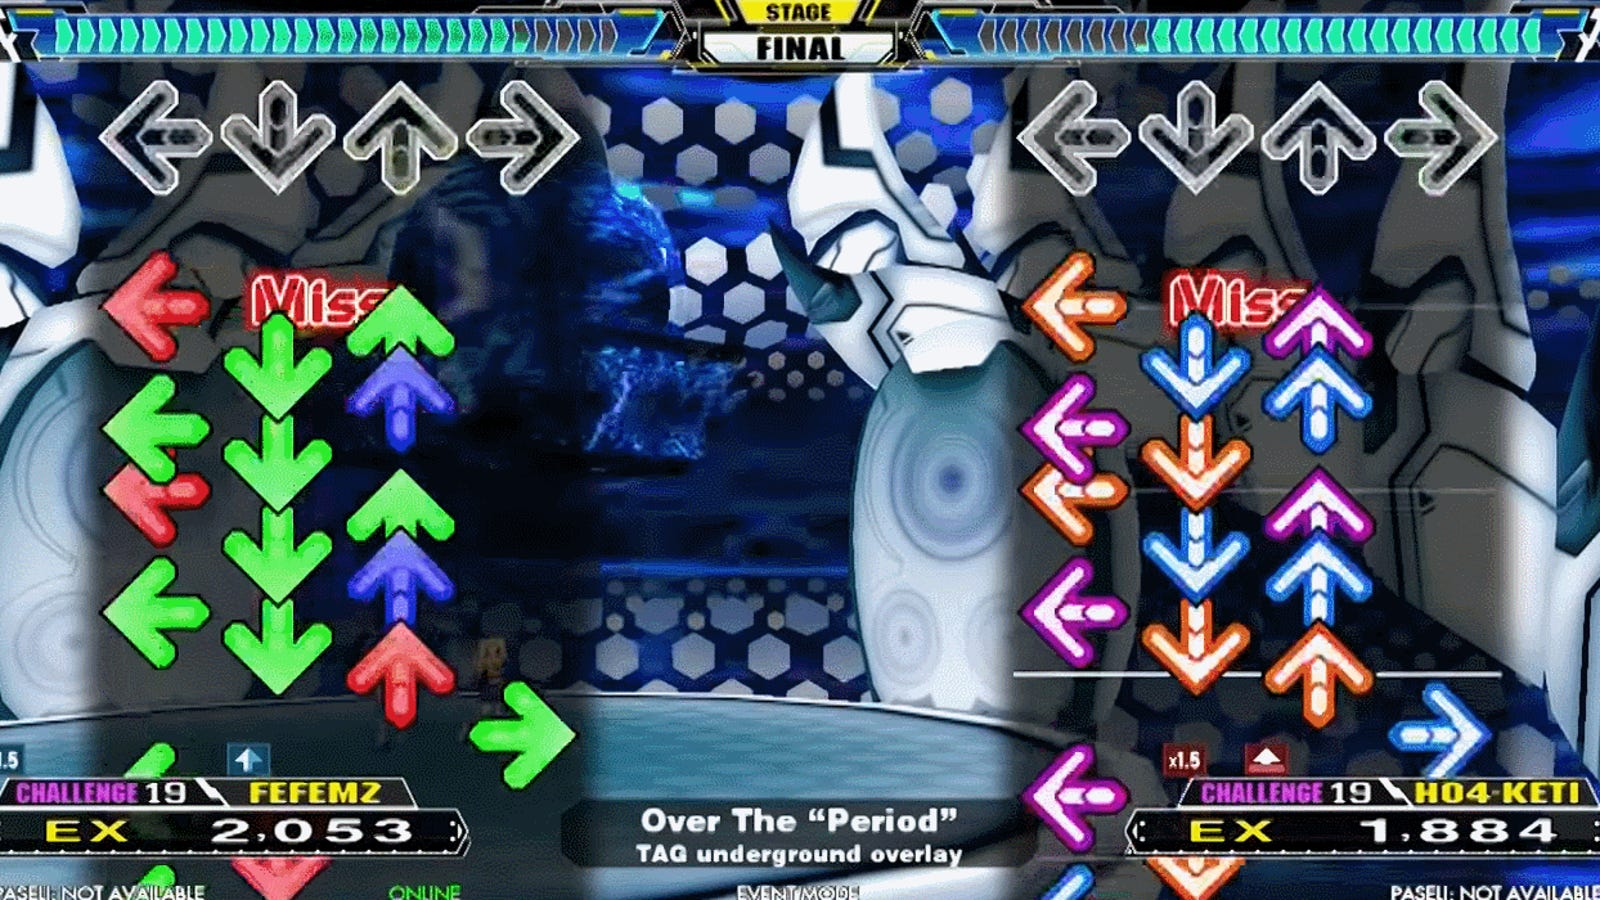 Even 20 Years Later, Dance Dance Revolution's Competitive Scene Has